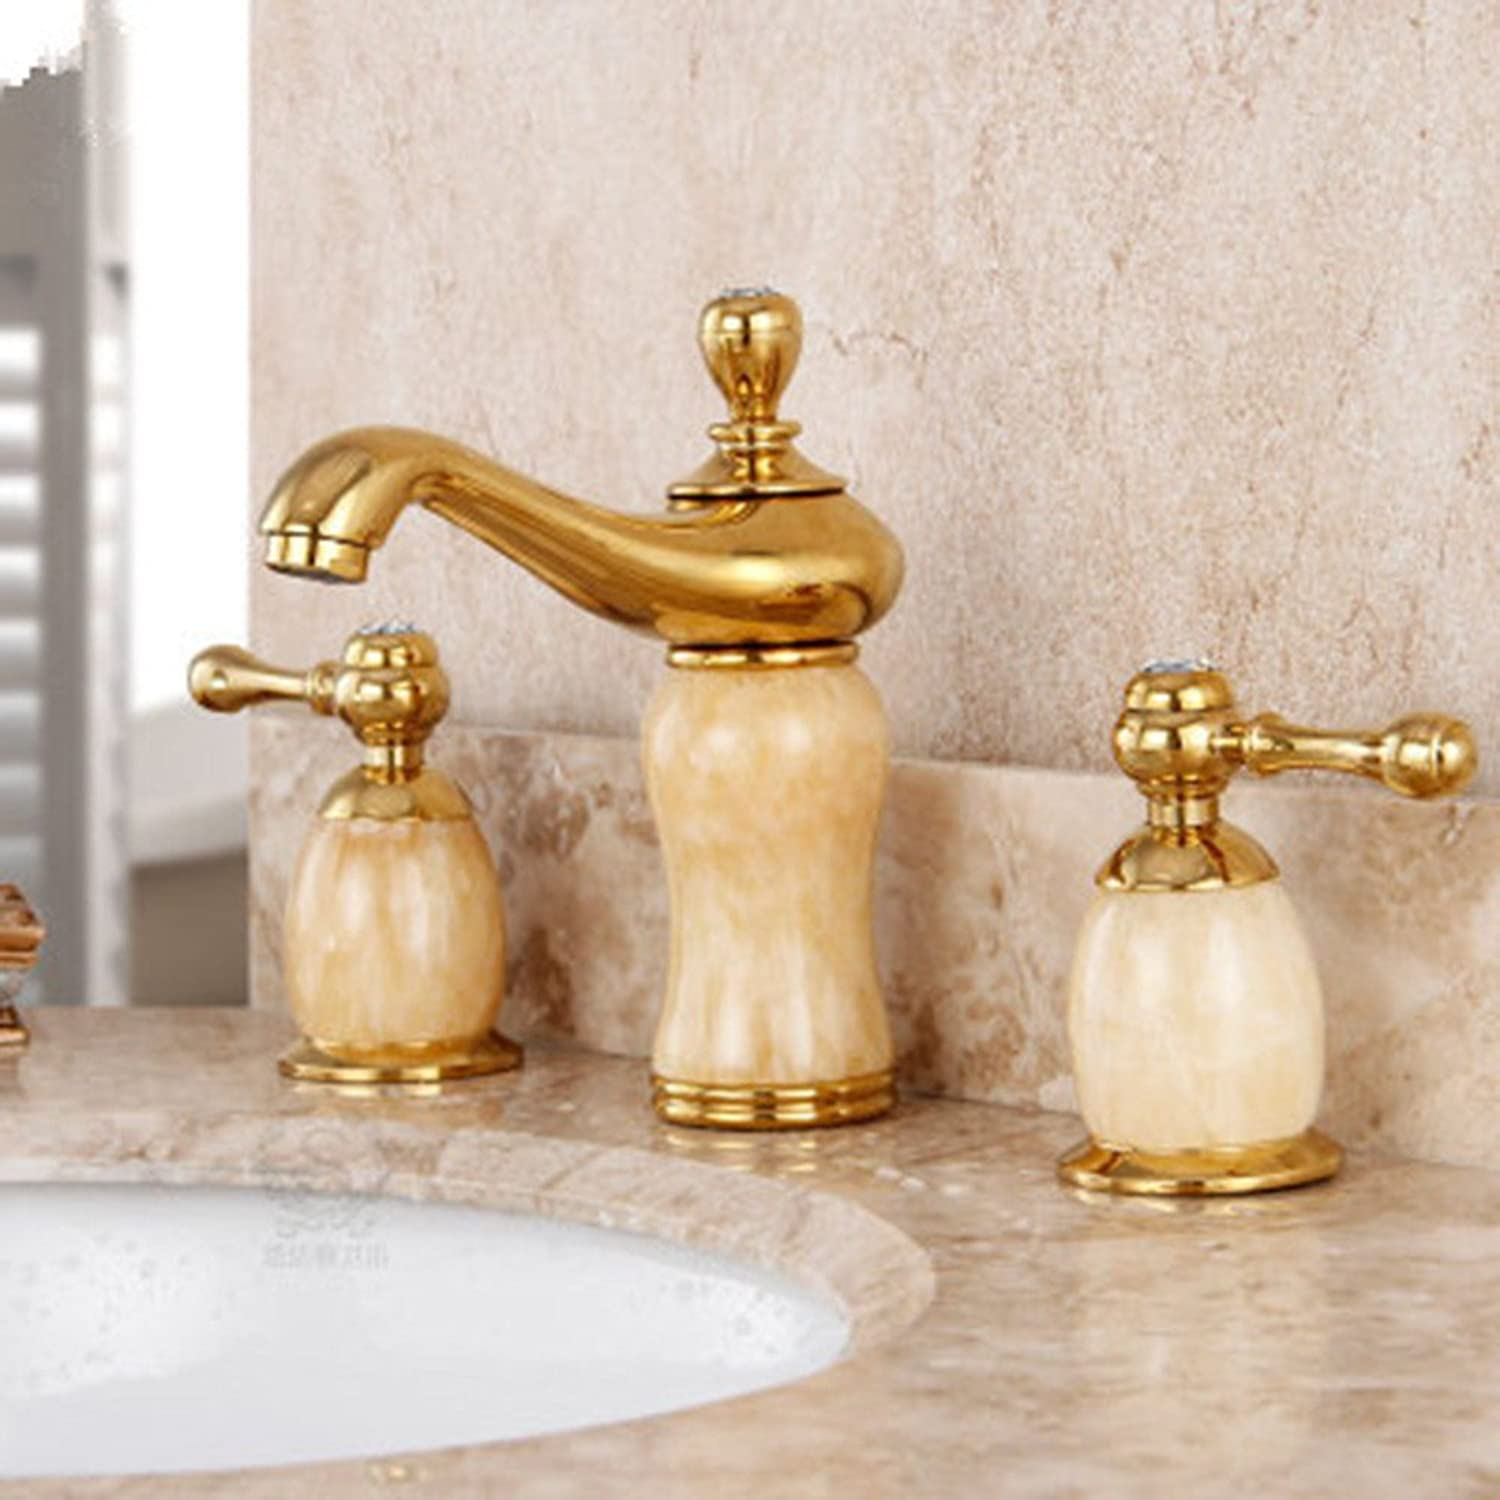 LHbox Basin Mixer Tap Bathroom Sink Faucet All three holes in the european copper hot and cold water faucet marble basin, B